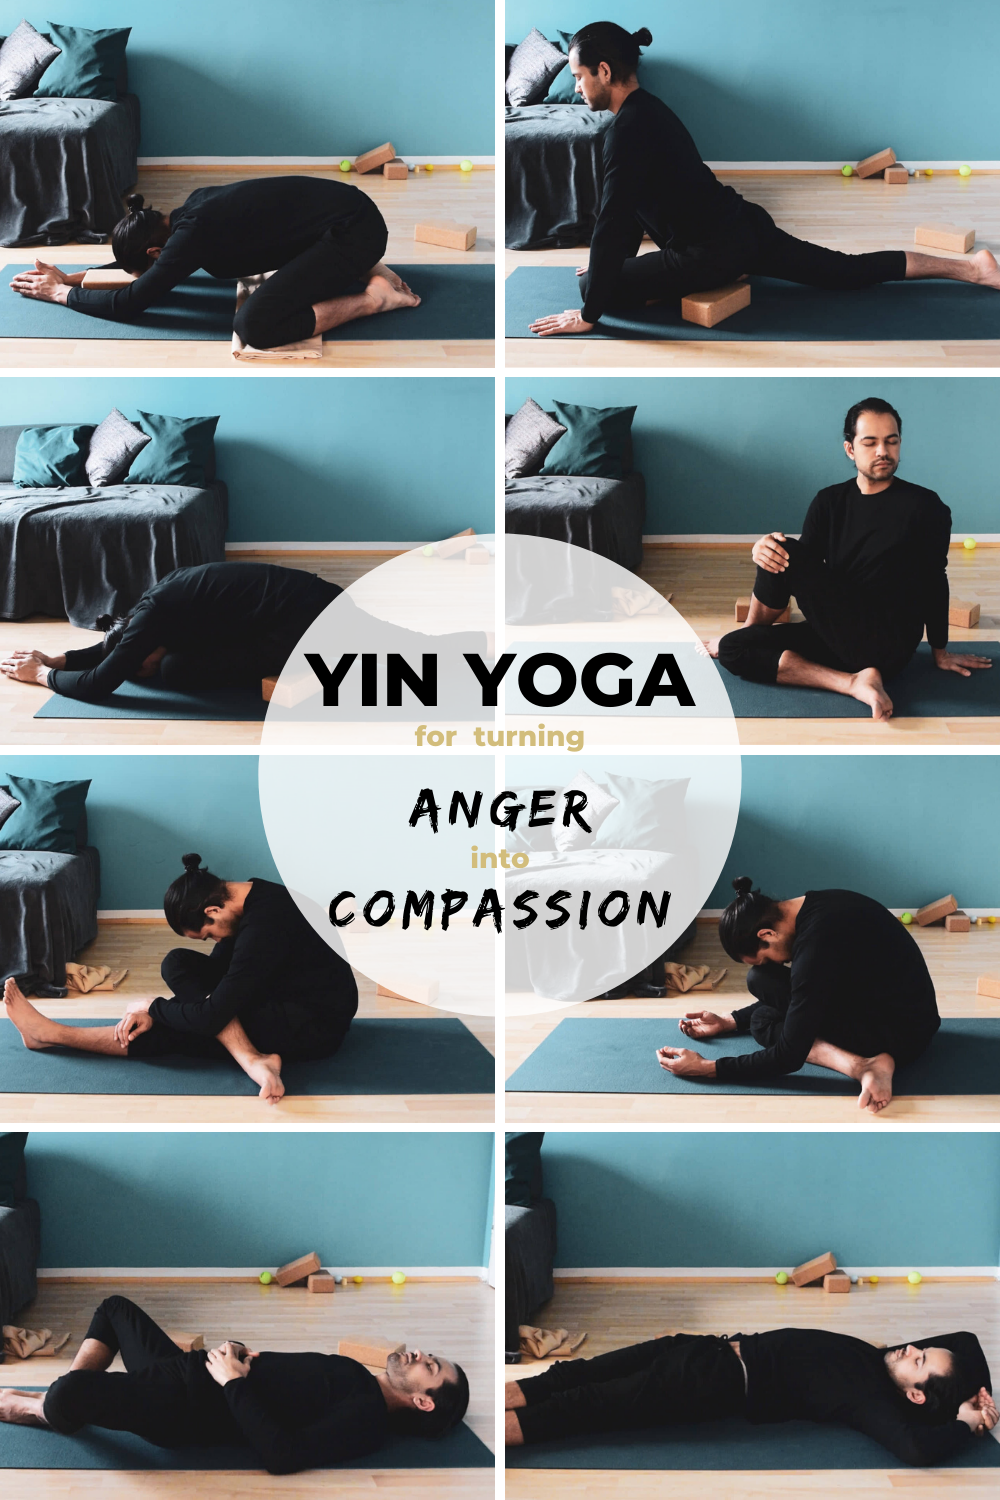 Yin Yoga for turning Anger into Compassion